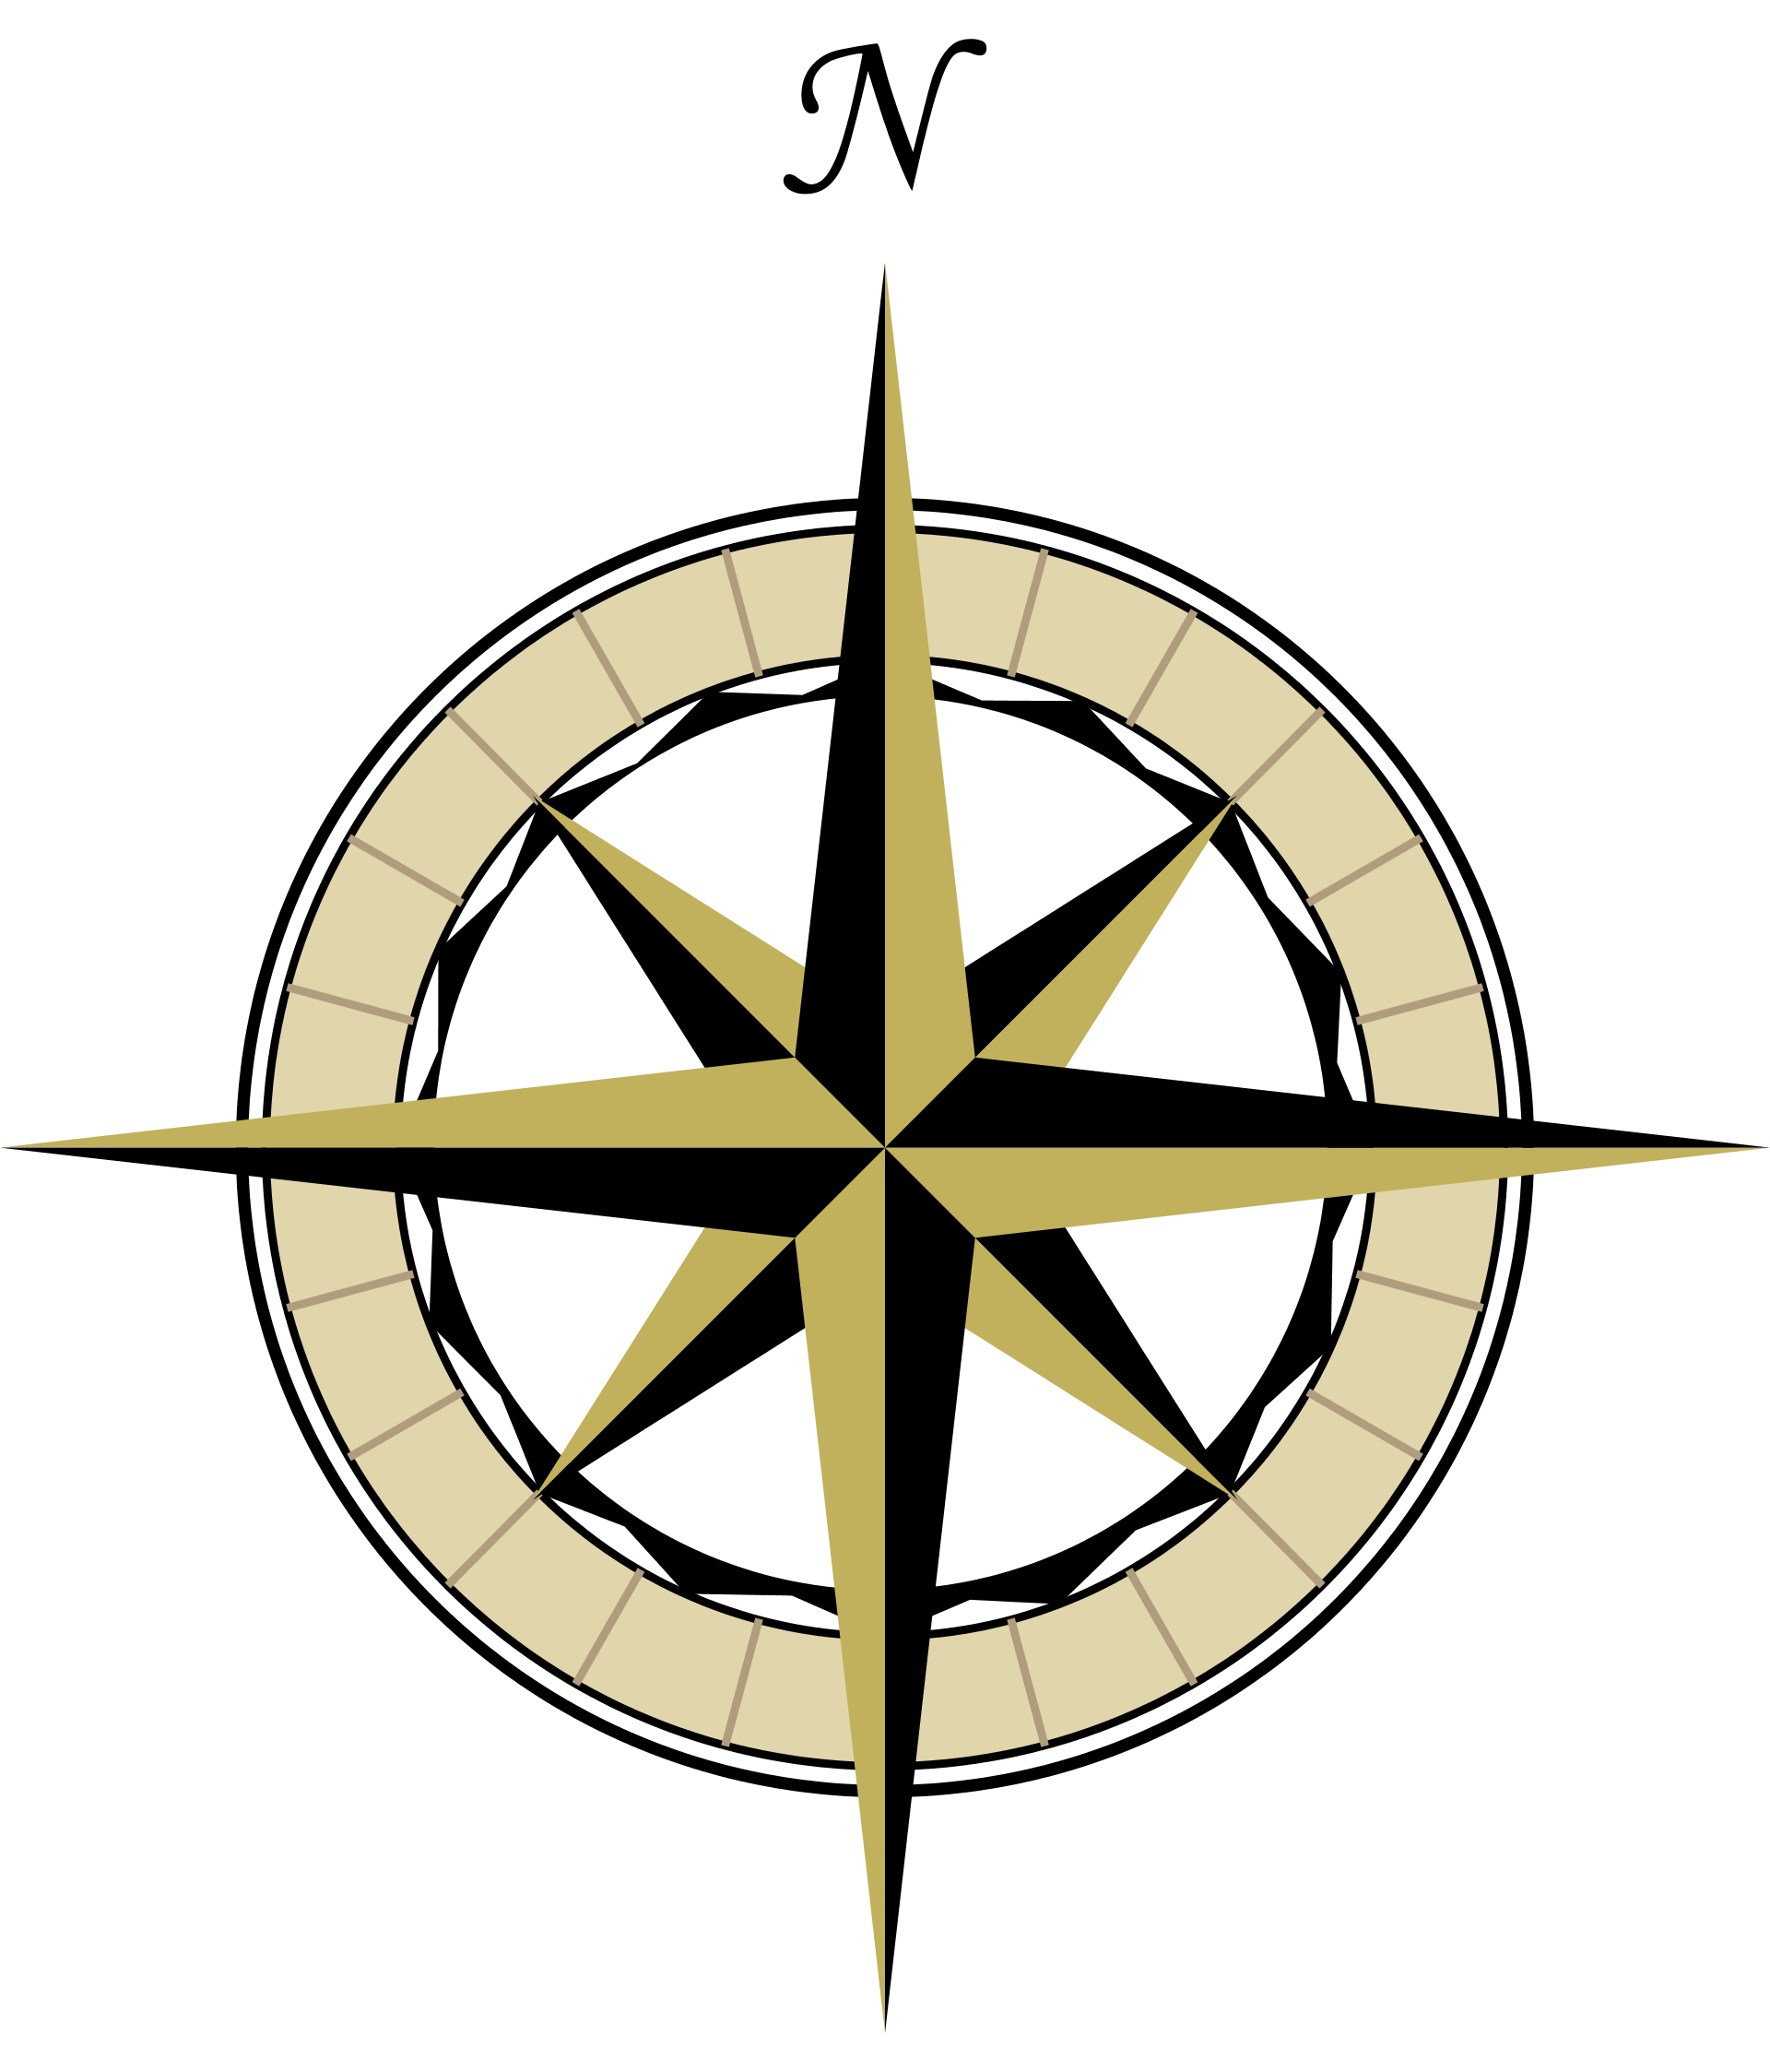 Simple Compass Rose - Cliparts.co